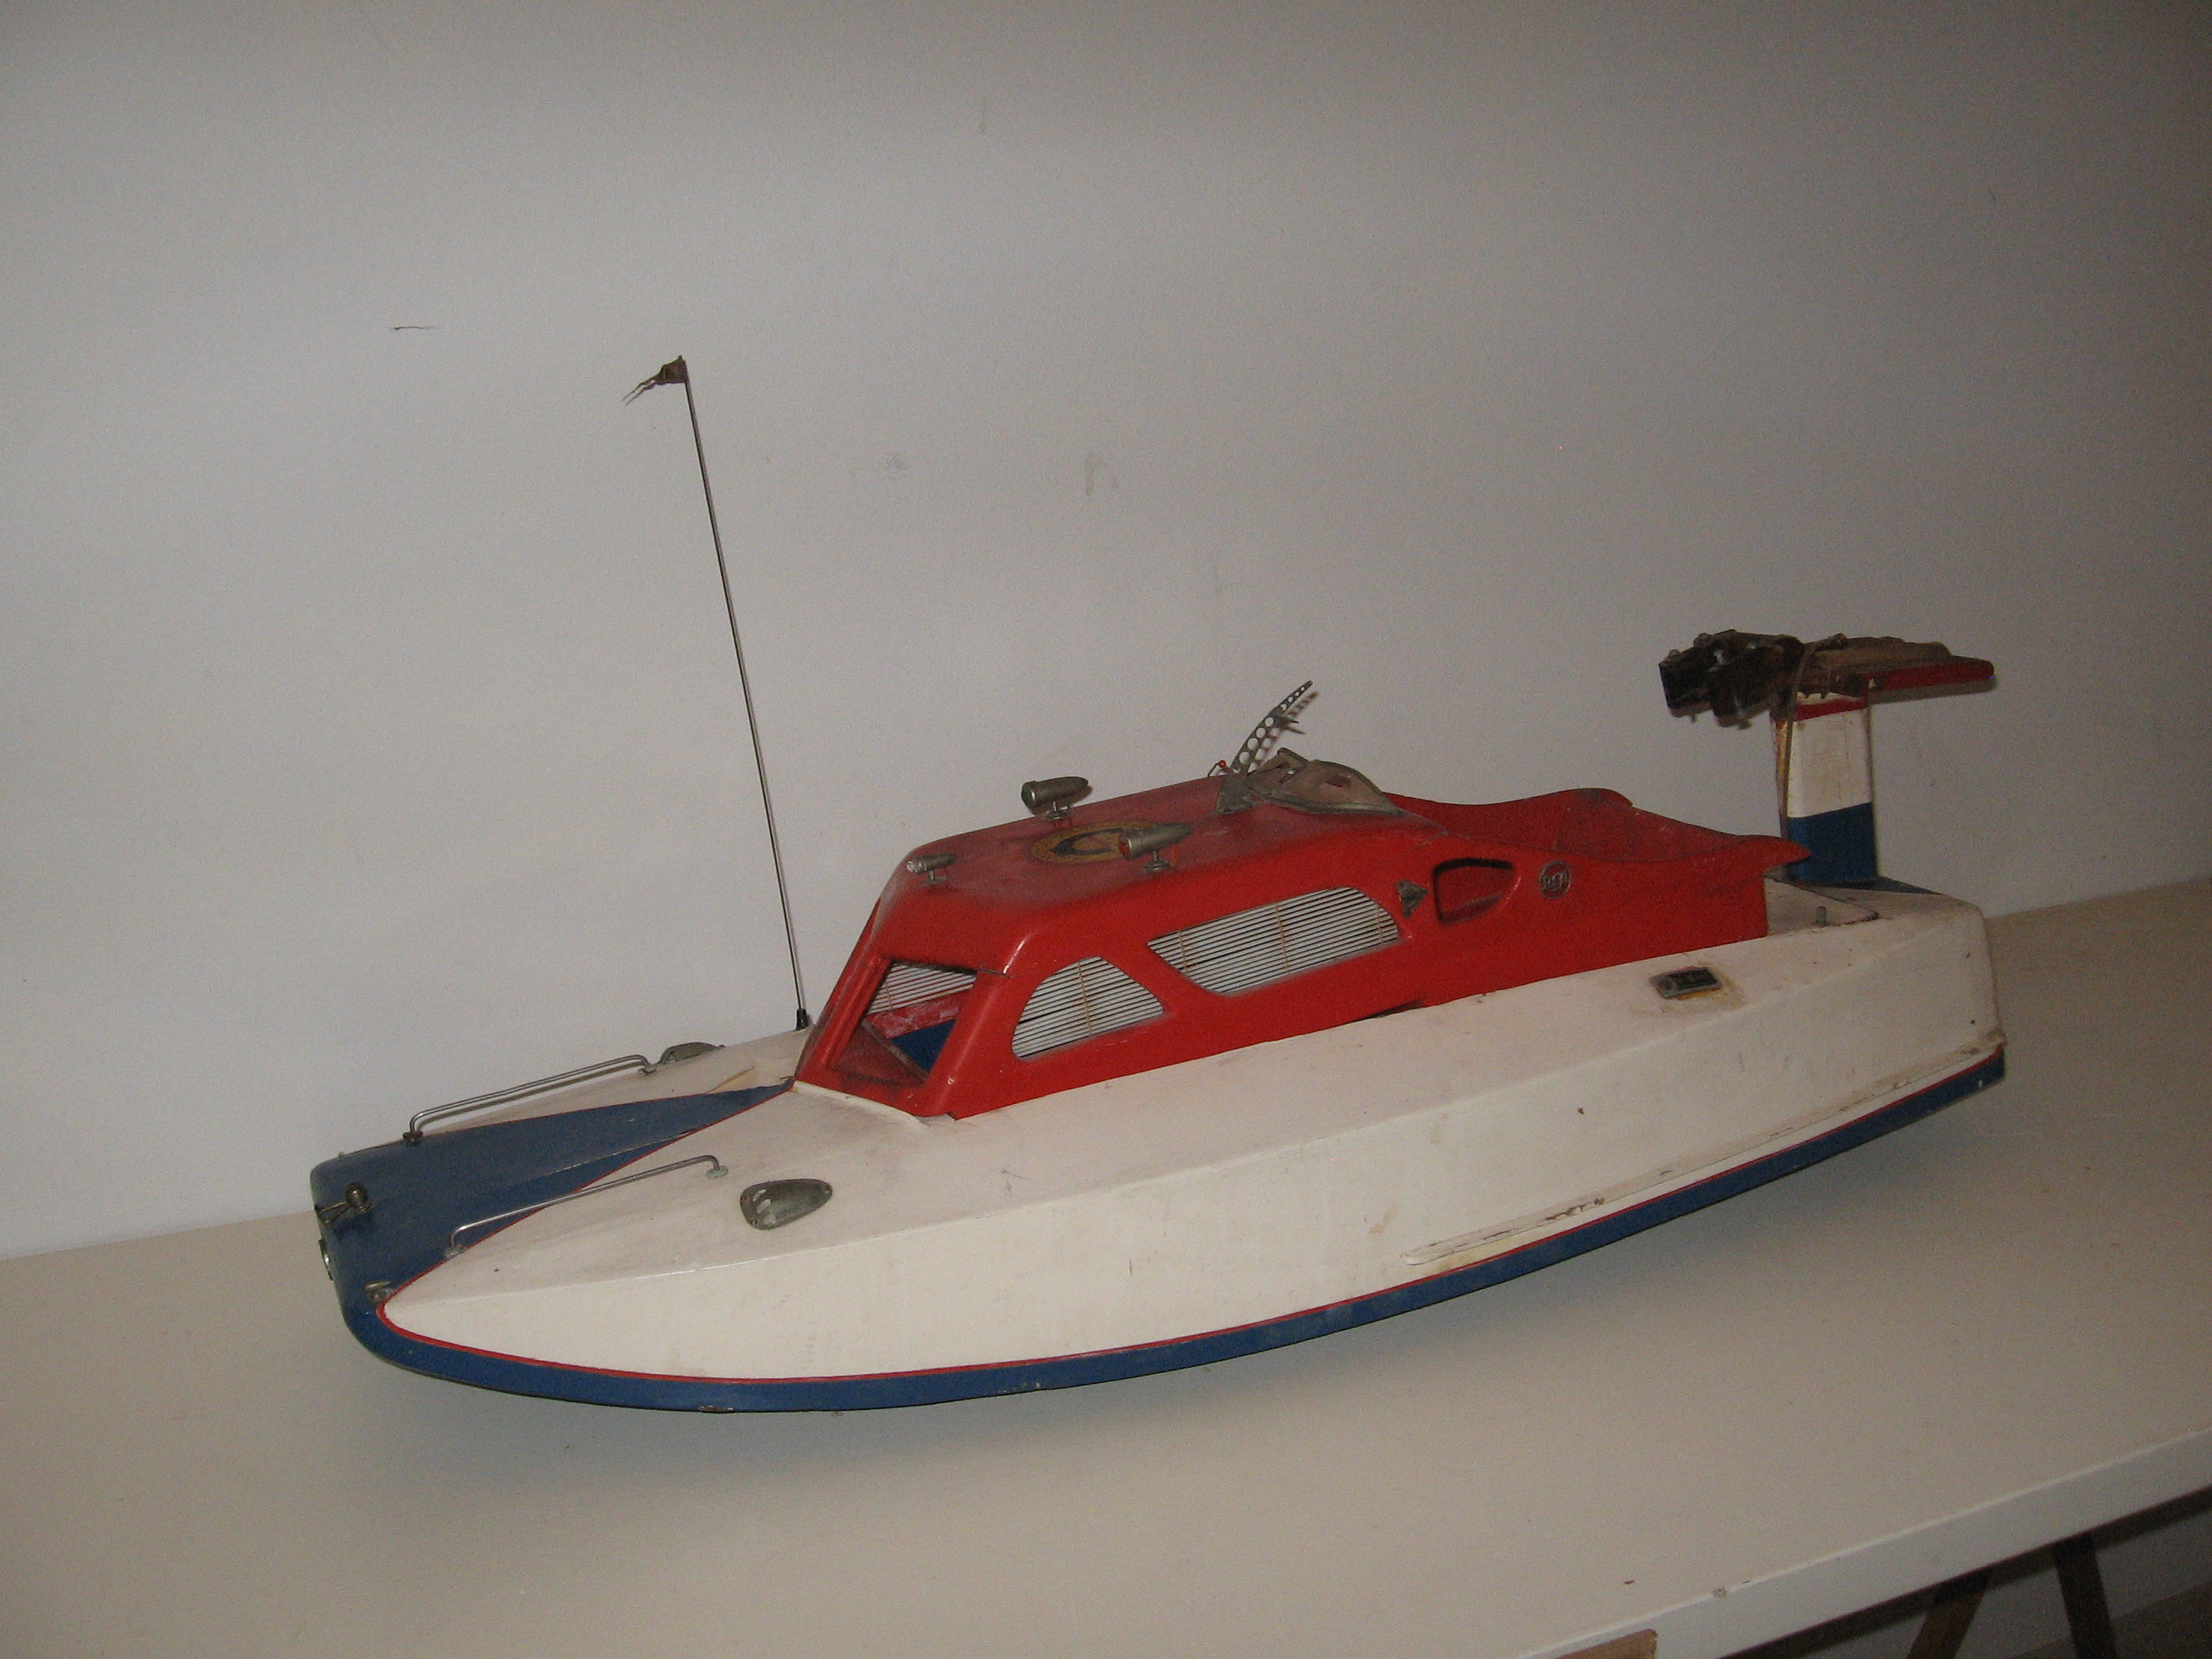 Click image for larger version  Name:RC boats 004.JPG Views:52 Size:1.16 MB ID:1977722